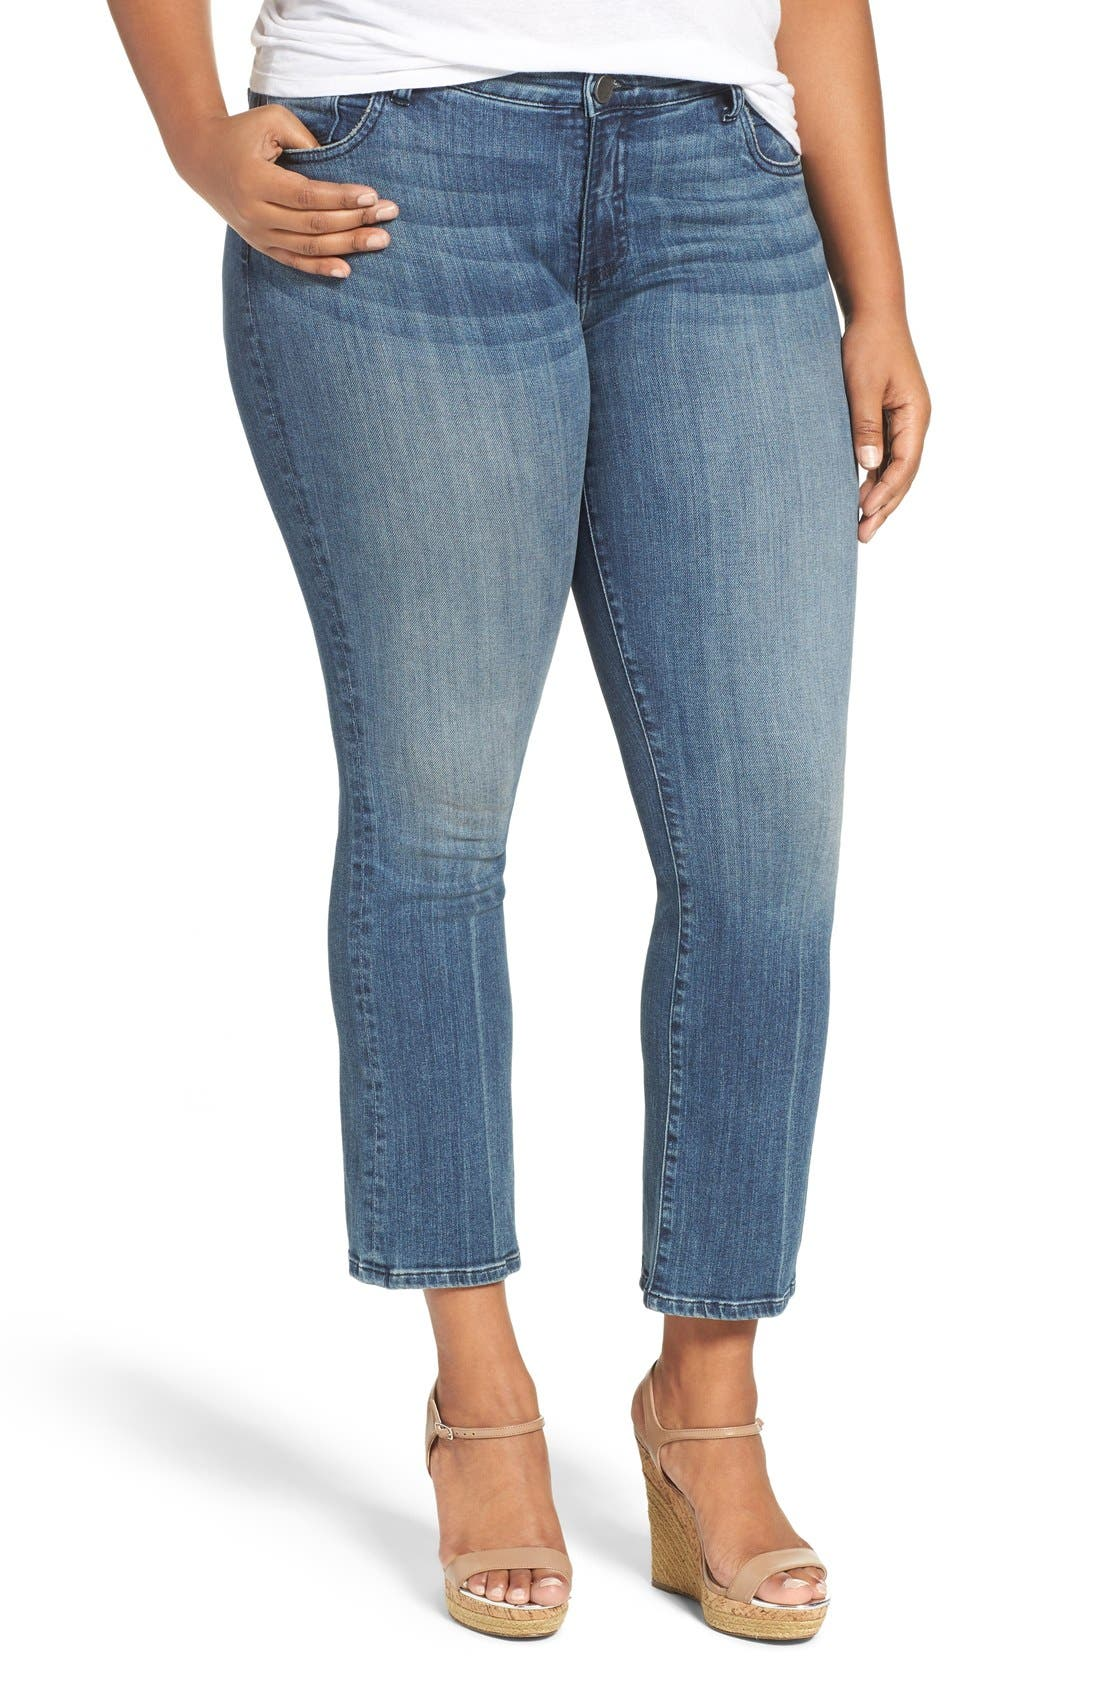 Main Image - KUT from the Kloth 'Reese' Crop Flare Leg Jeans (Perfection) (Plus Size)